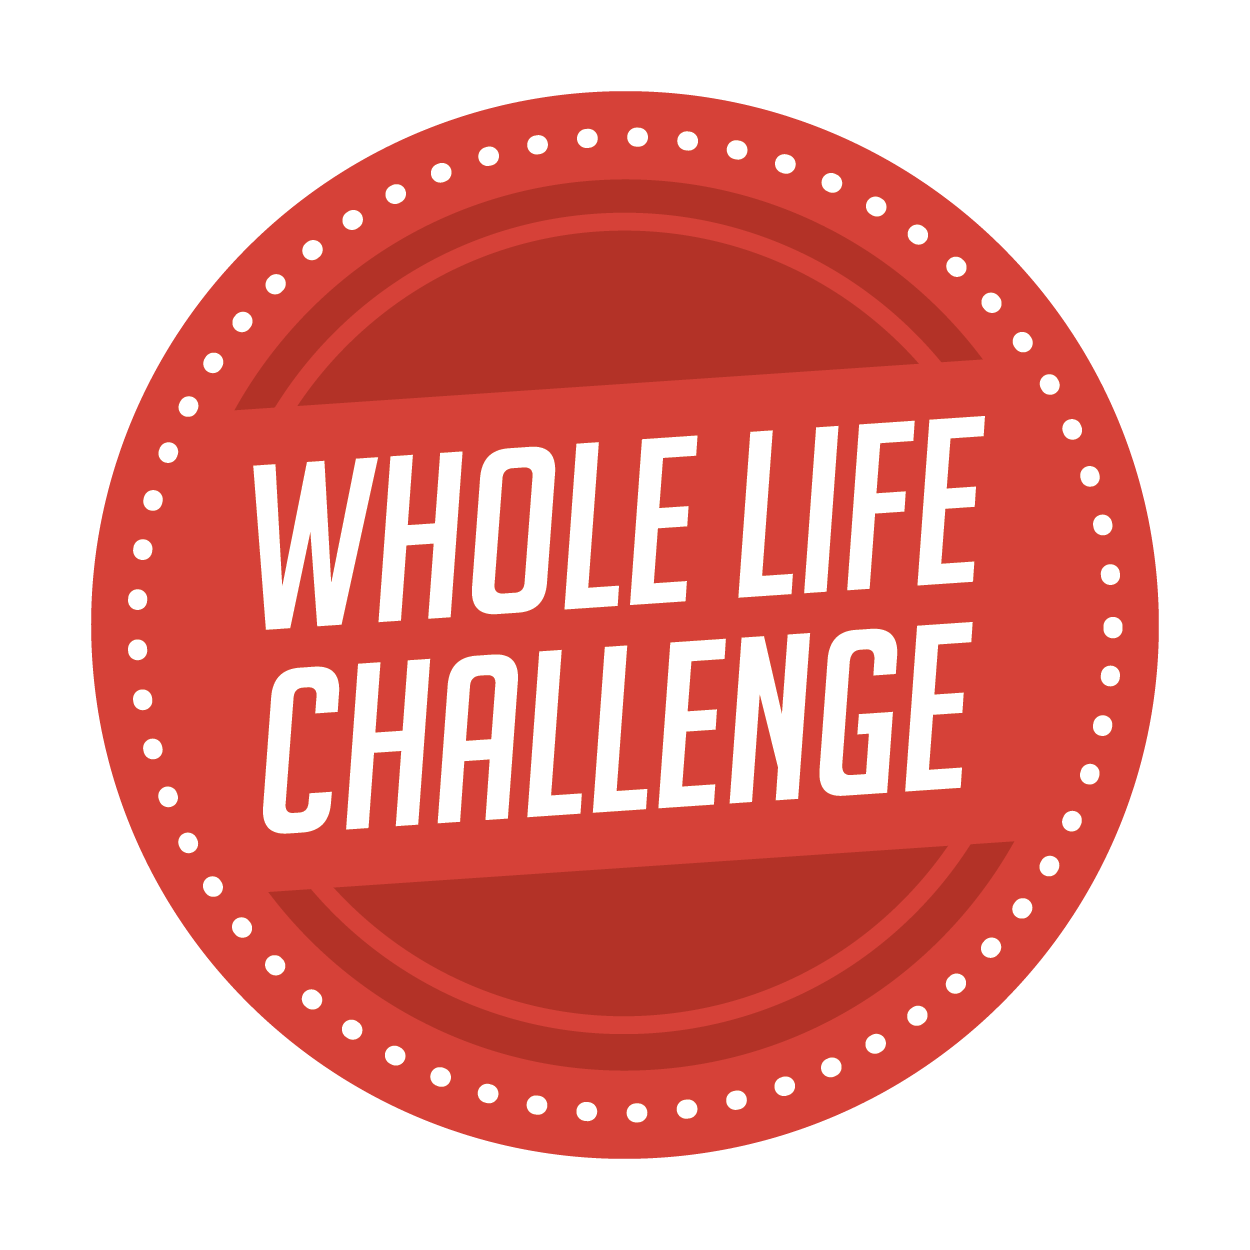 Whole life challenge red logo